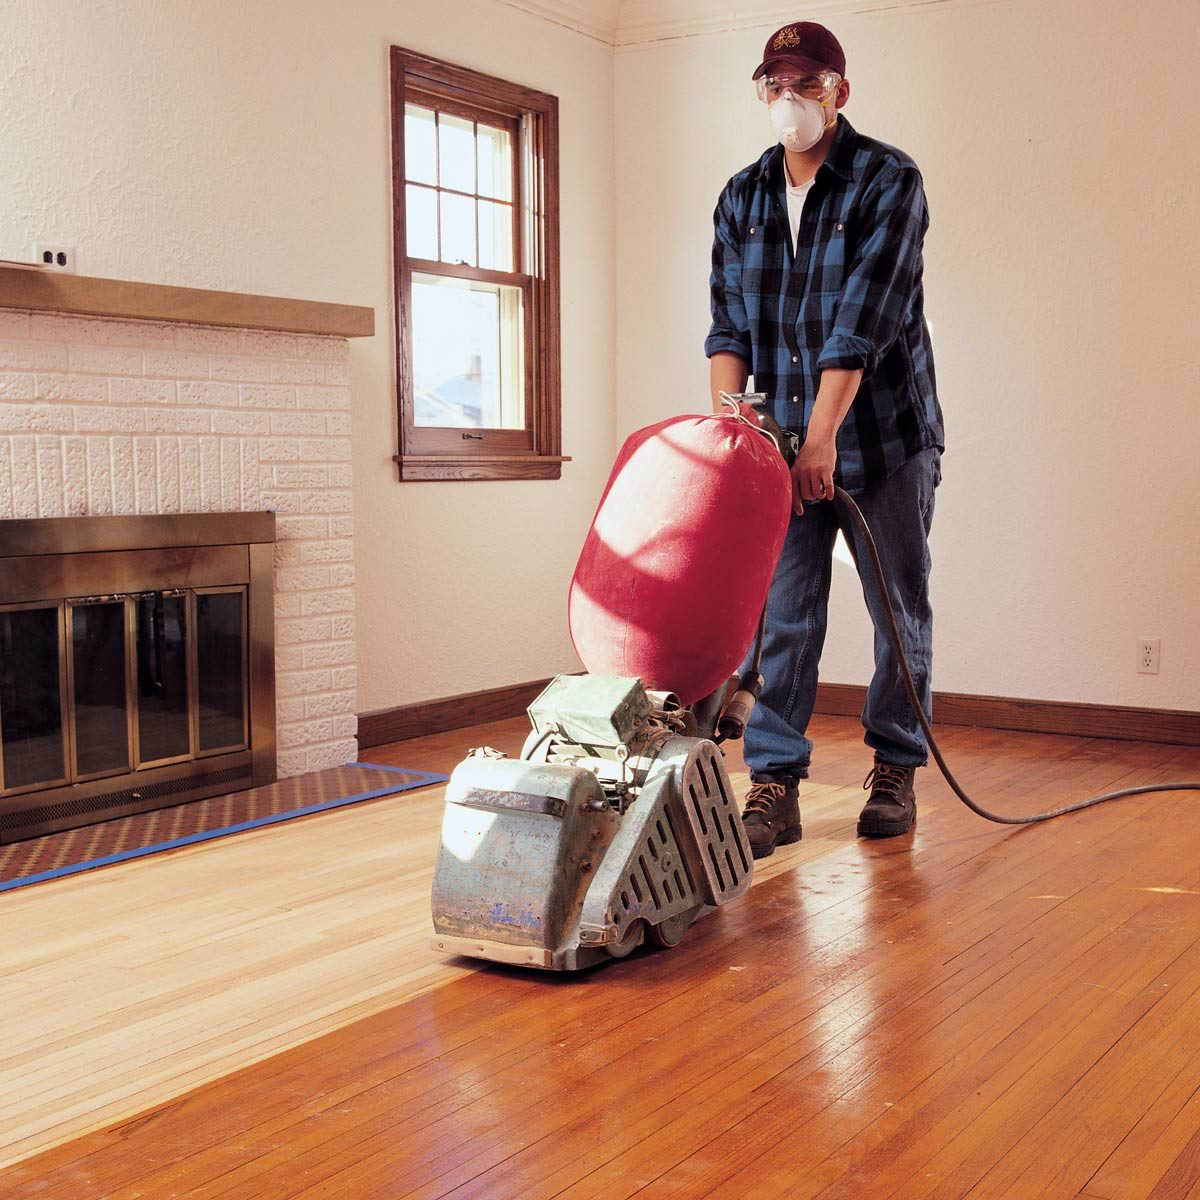 Inexpensive Flooring Options The Family Handyman - What is the cheapest flooring to install